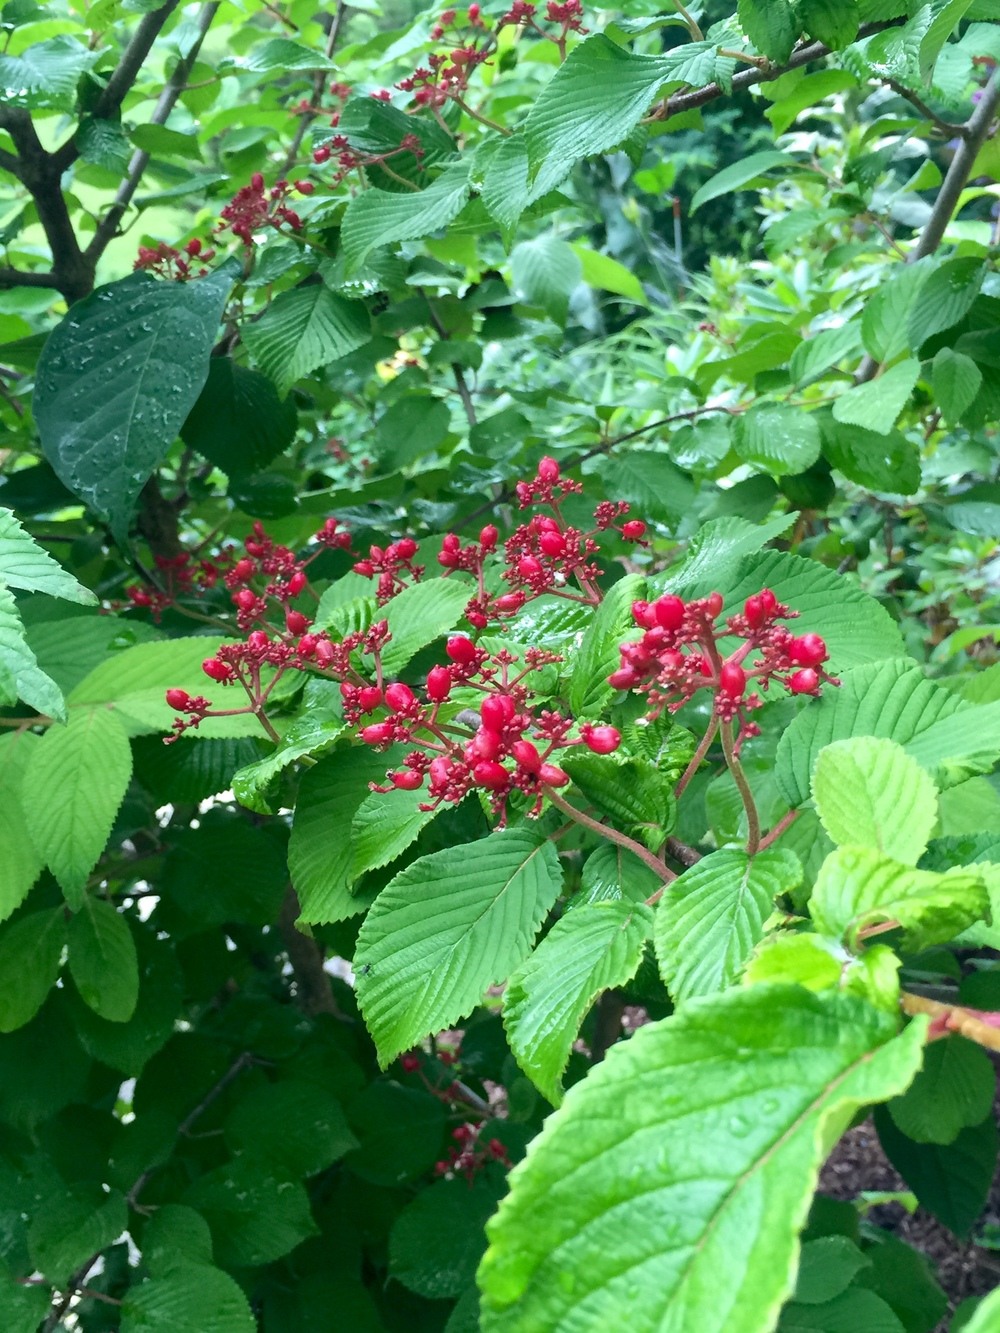 Lovely red berries of the doublefile viburnum